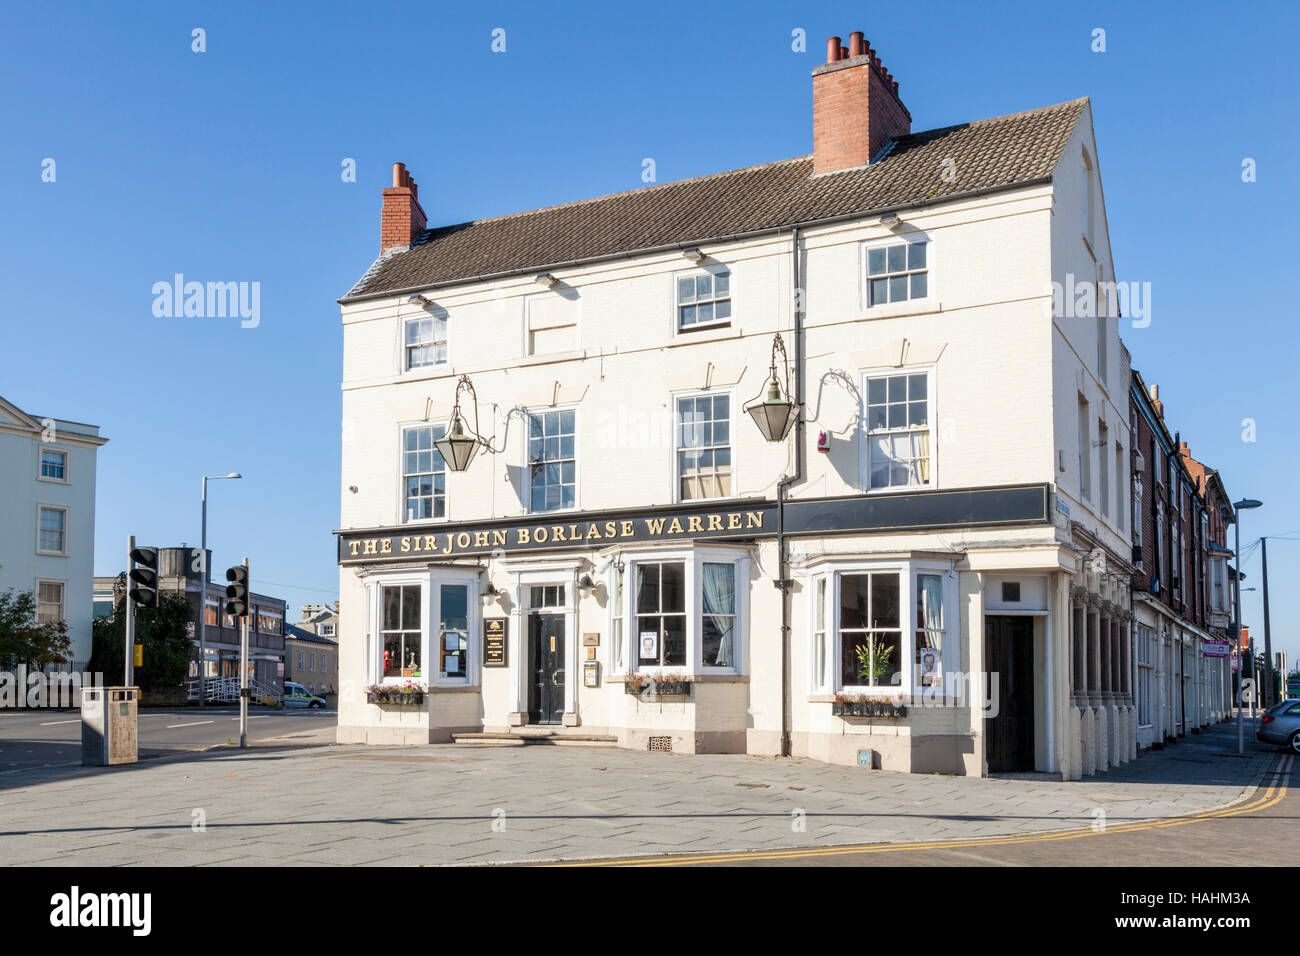 The Sir John Borlase Warren pub in Nottingham, England, UK - Stock Image